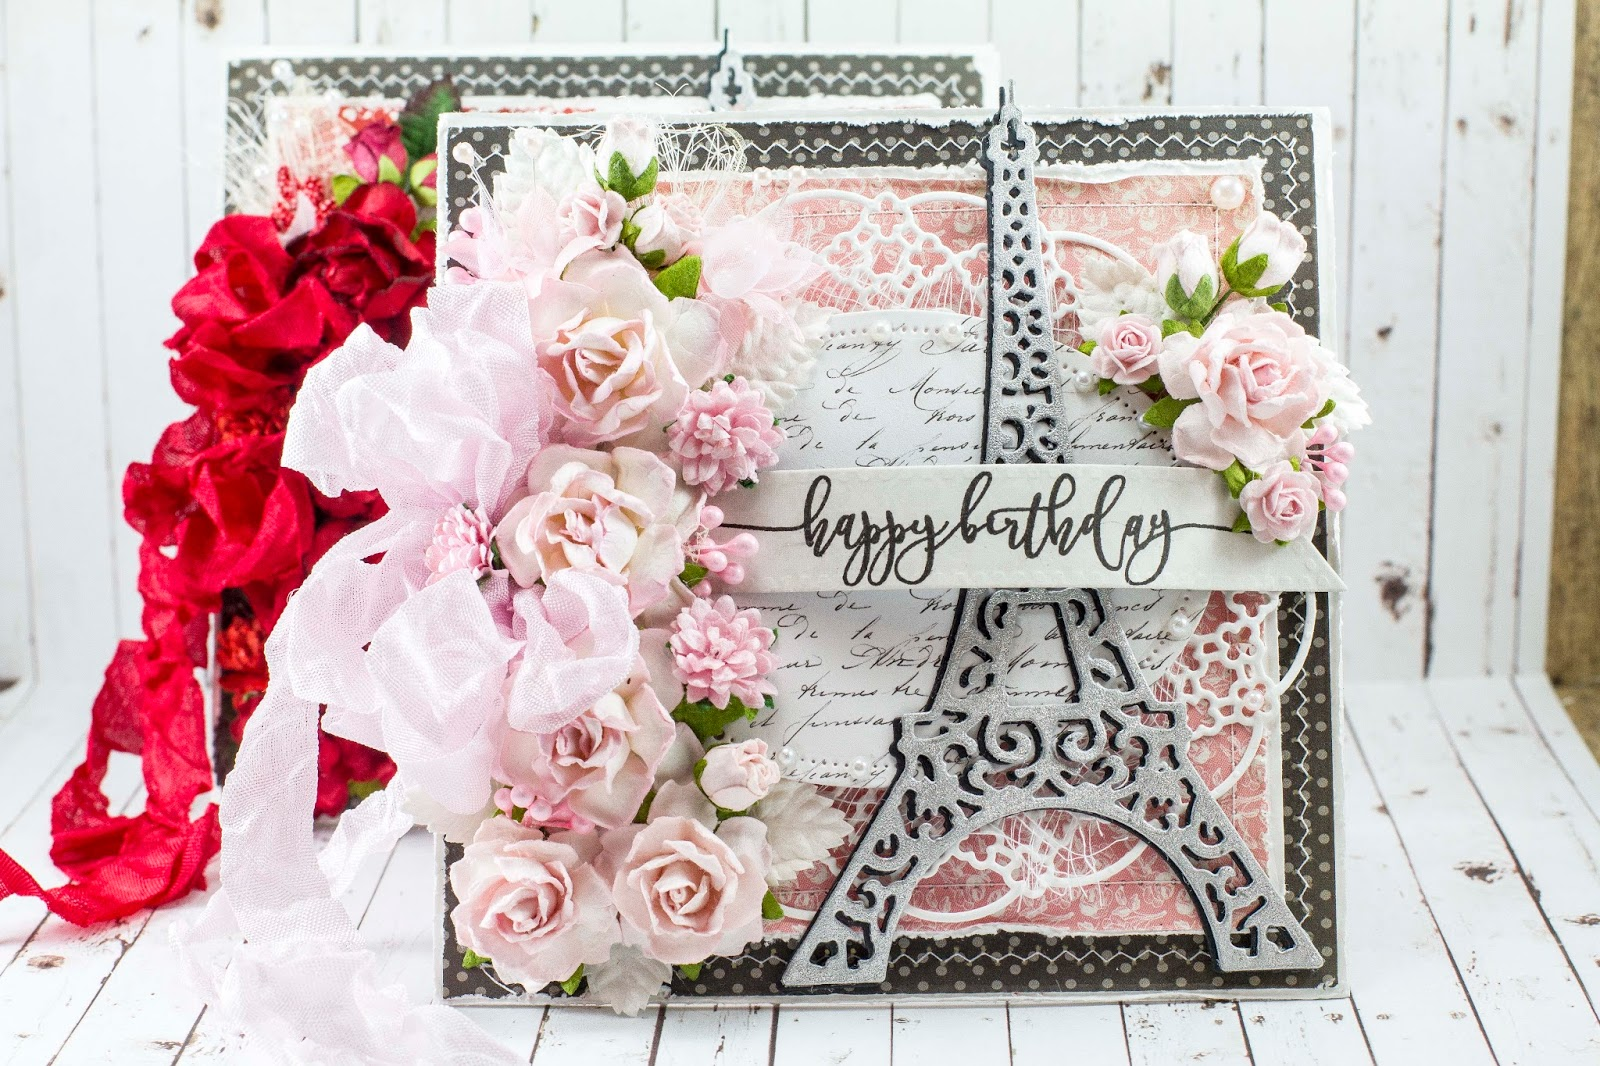 Wild orchid crafts happy birthday cards happy tuesday everyone lisa here to share a couple of paris themed birthday cards with you using several wild orchid crafts flowers and embellishments izmirmasajfo